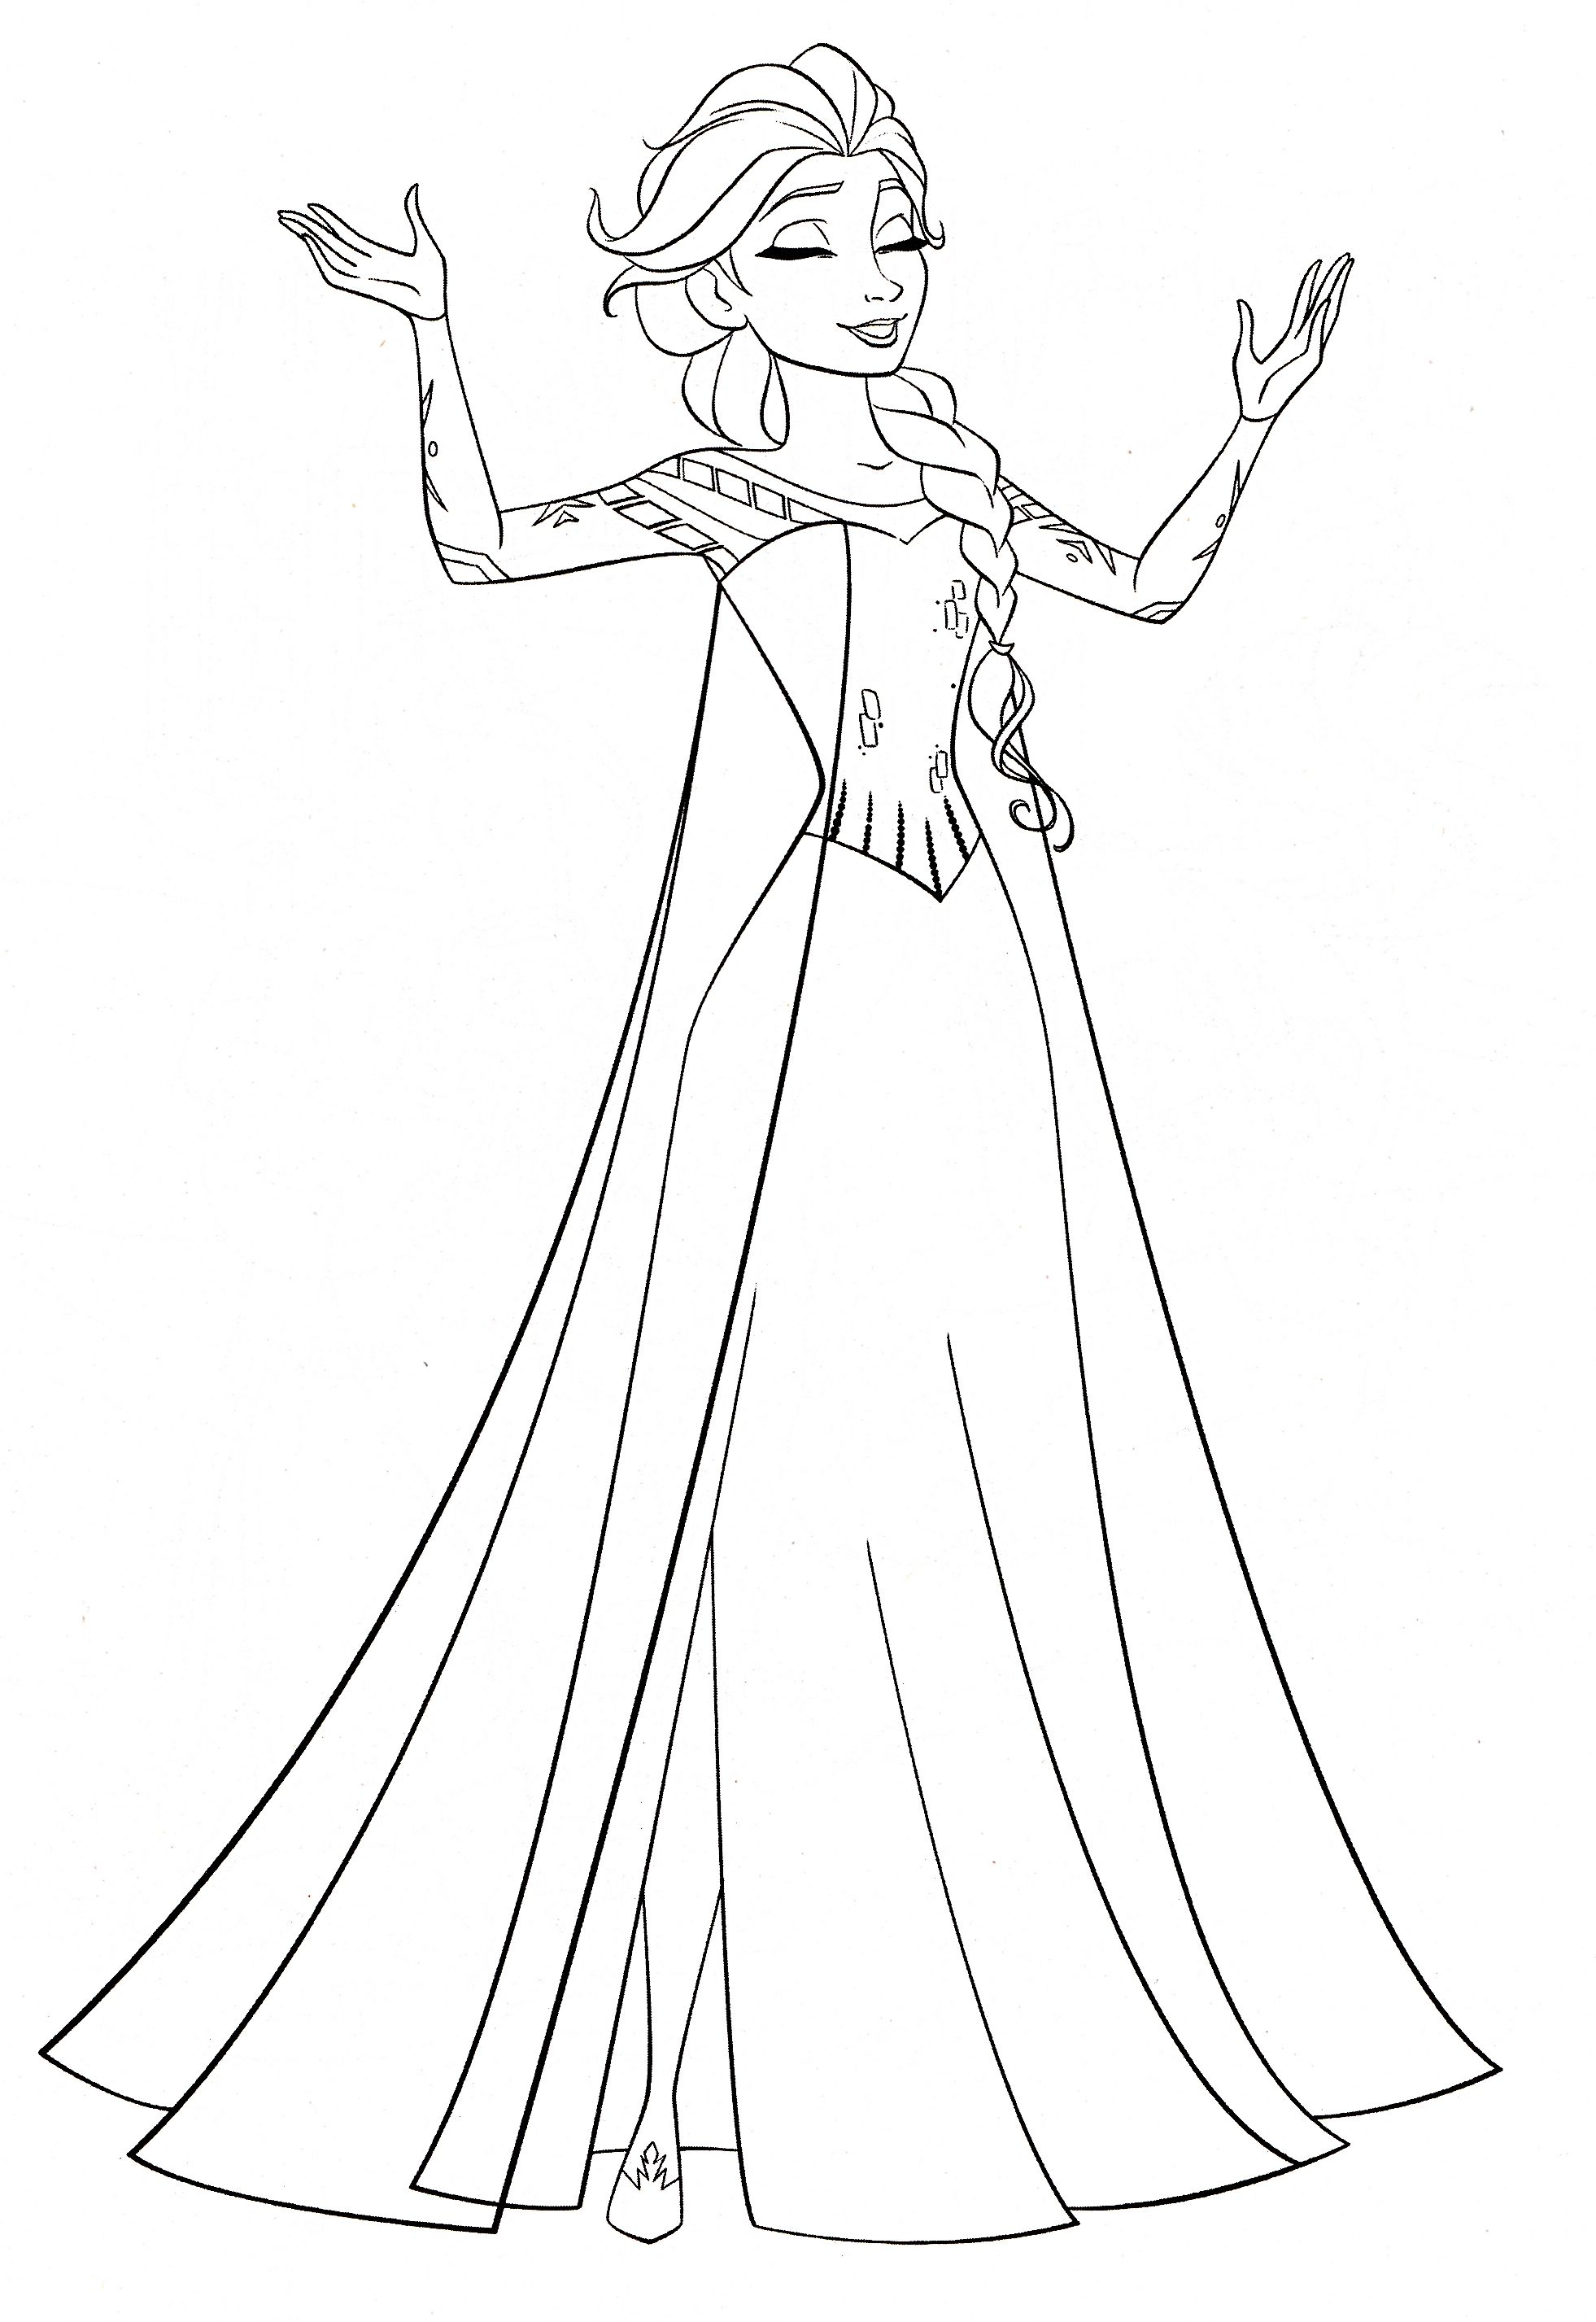 Frozen Coloring Pages | Coloring | Pinterest | Dibujos frozen ...